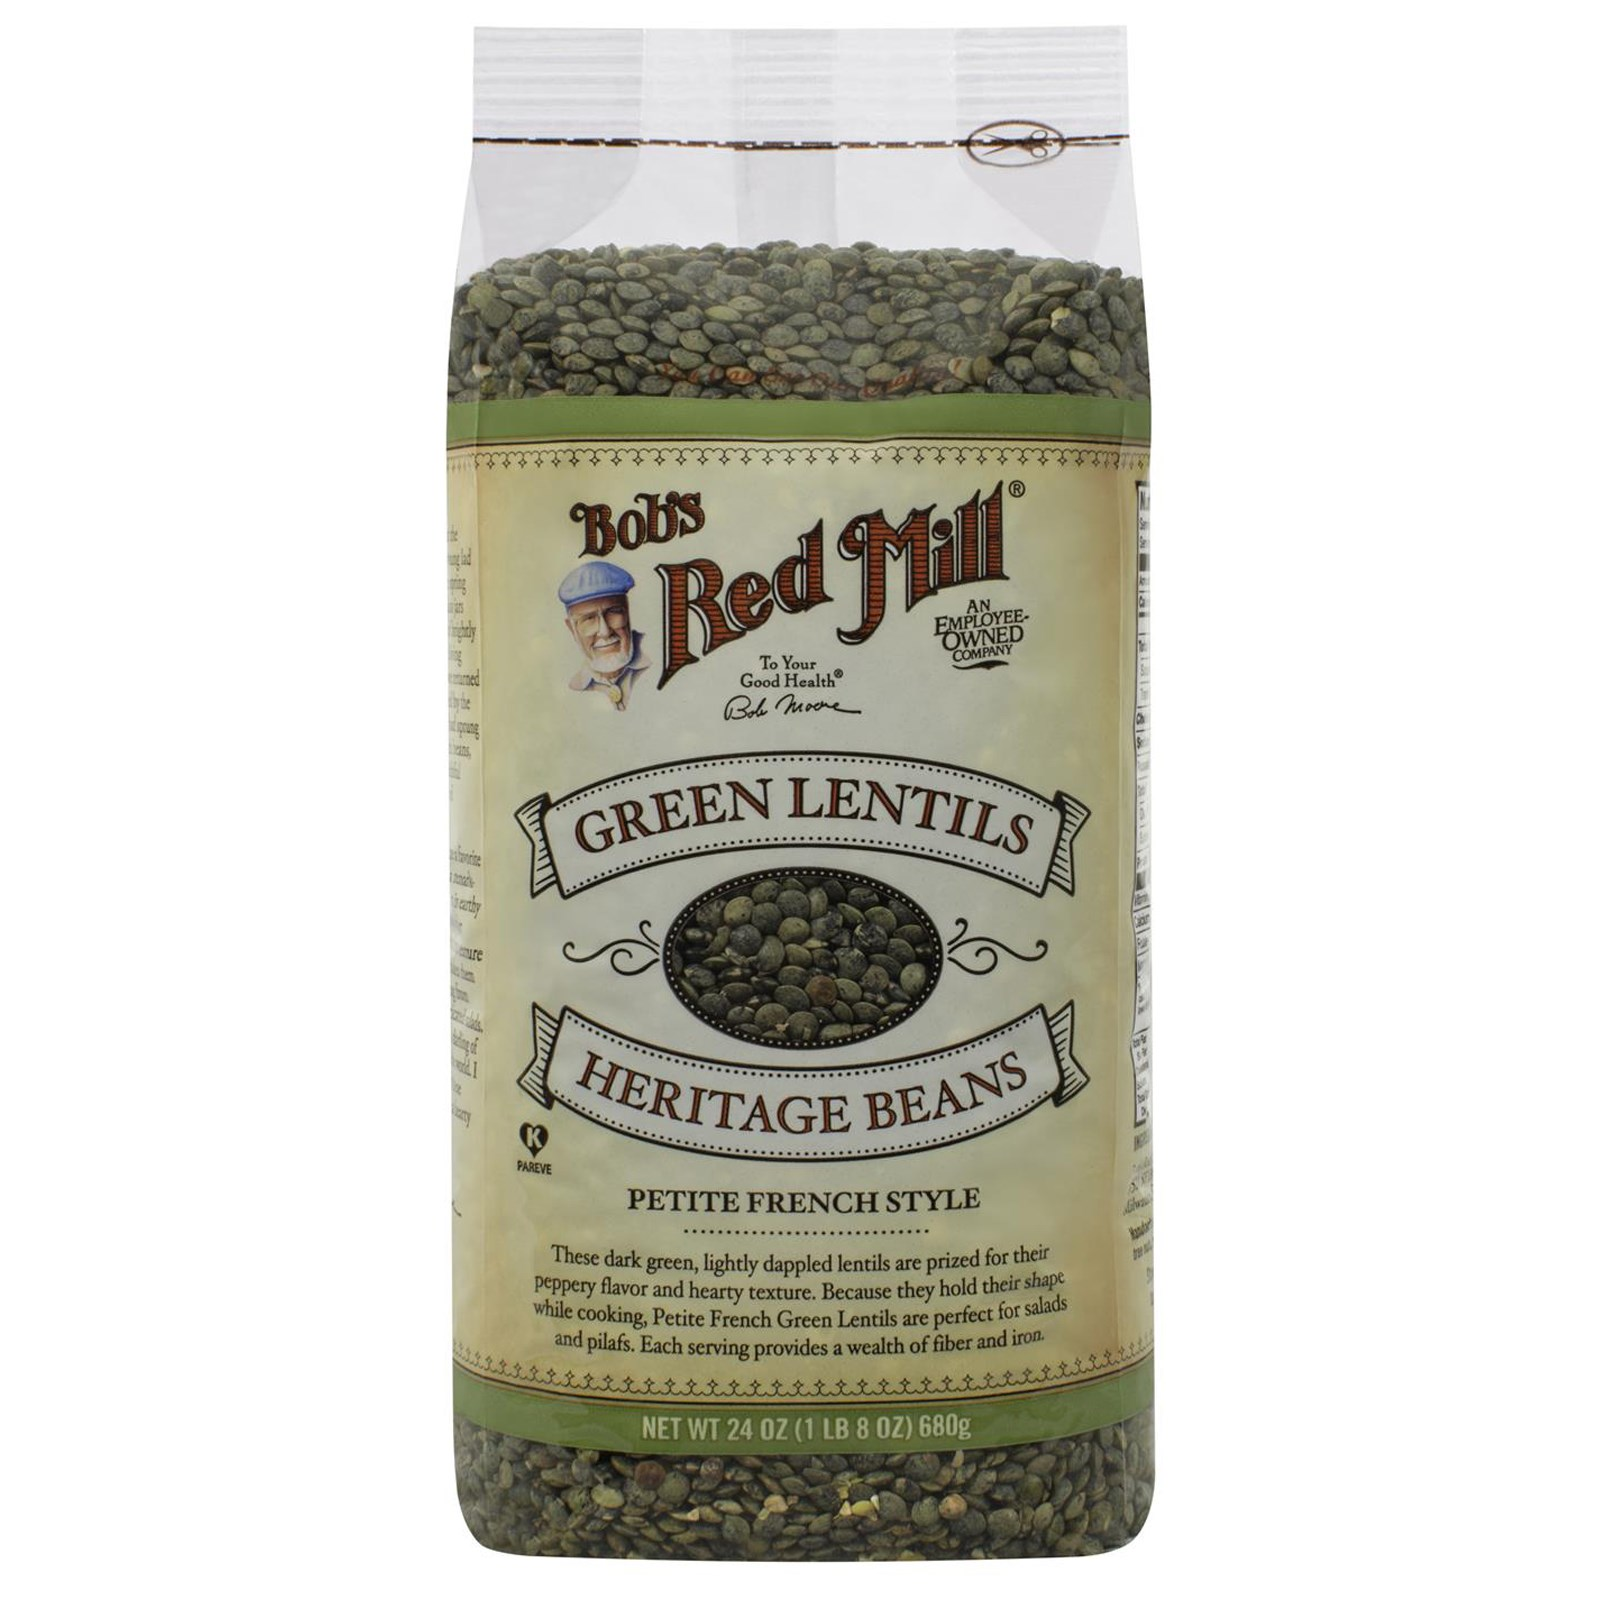 Bob's Red Mill, Green Lentils Heritage Beans, Petite French Style, 24 oz (pack of 2)